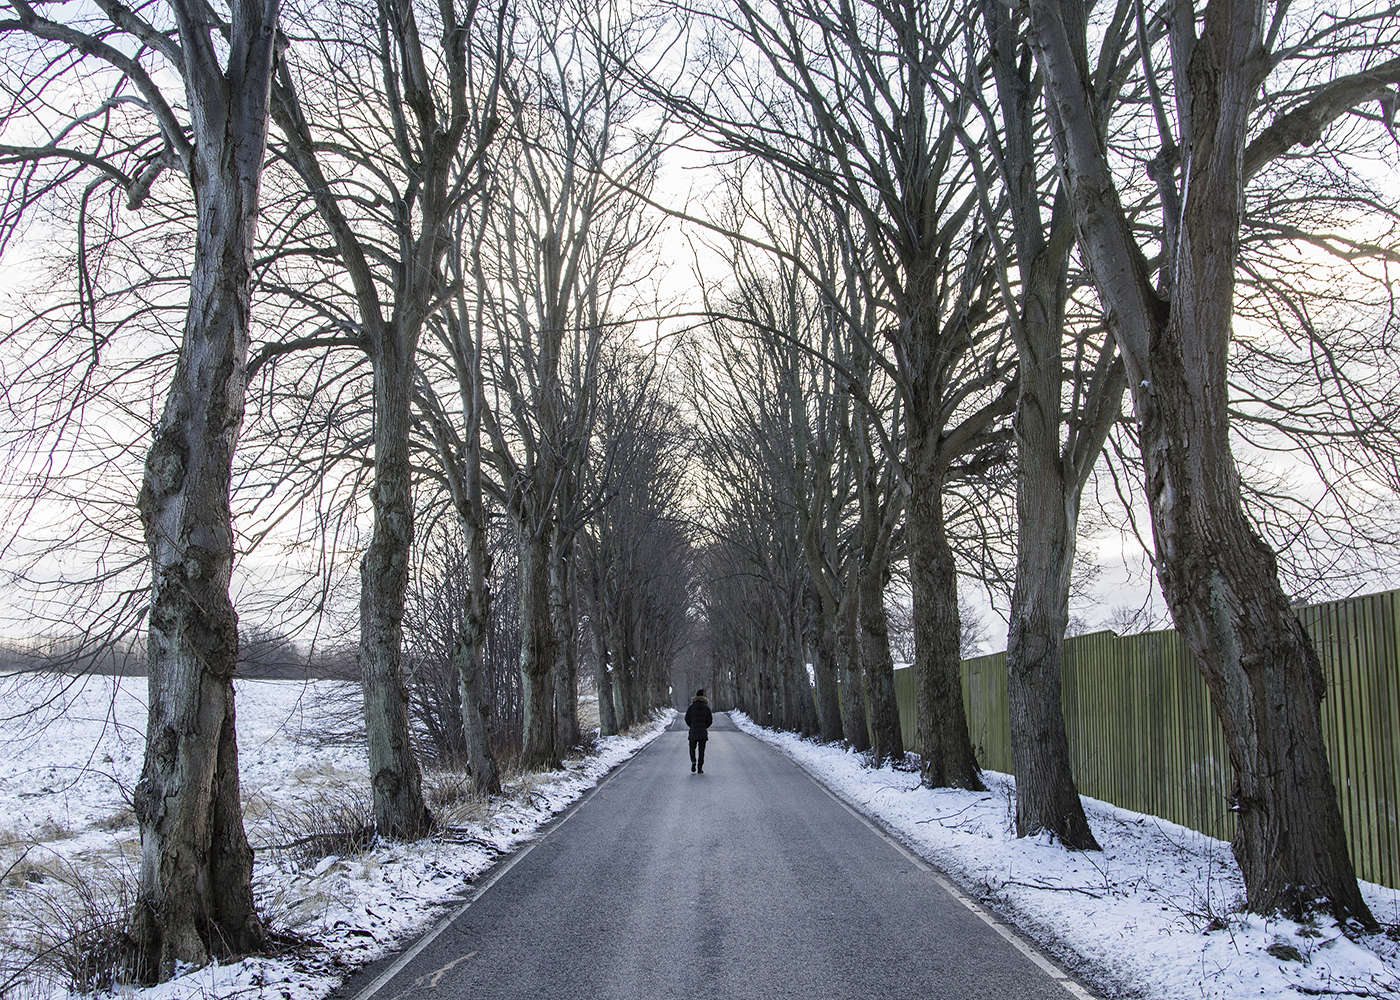 15/01/2016 -- Sandholm, Denmark -- There is a street next to the camp where Qanie always walk there when he want to think and feels sad. the street always empty you can only see the trees and the birds.